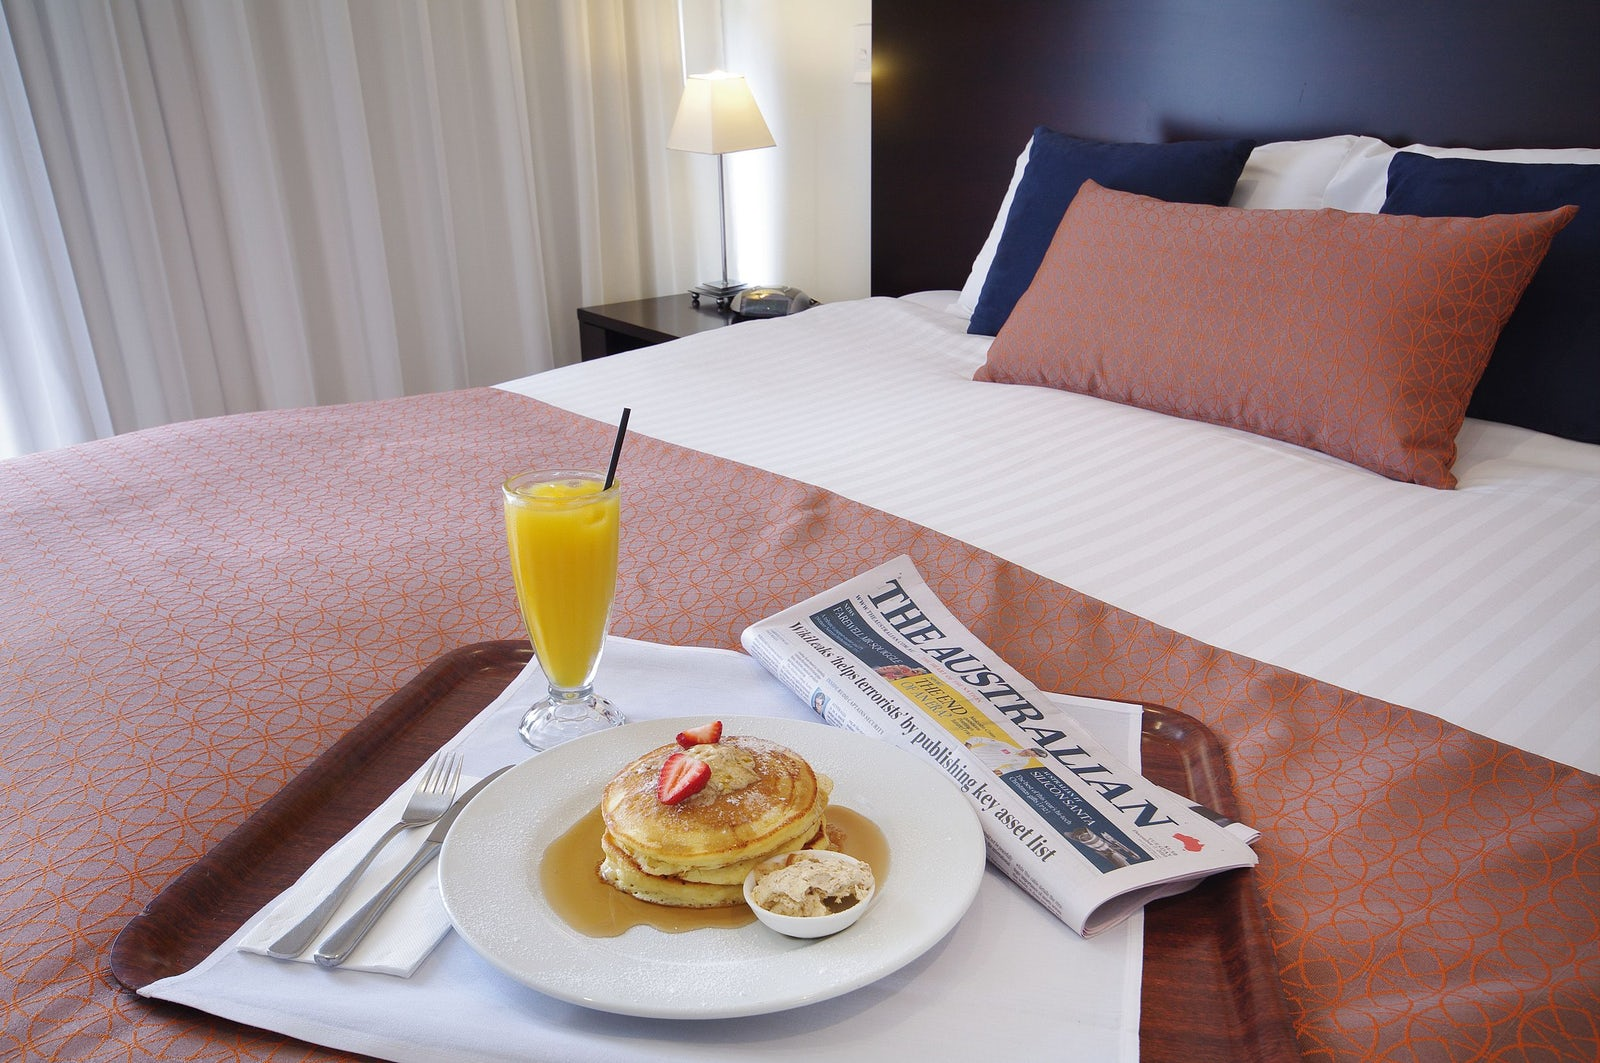 The paper is complementary when you stay with Macquarie waters